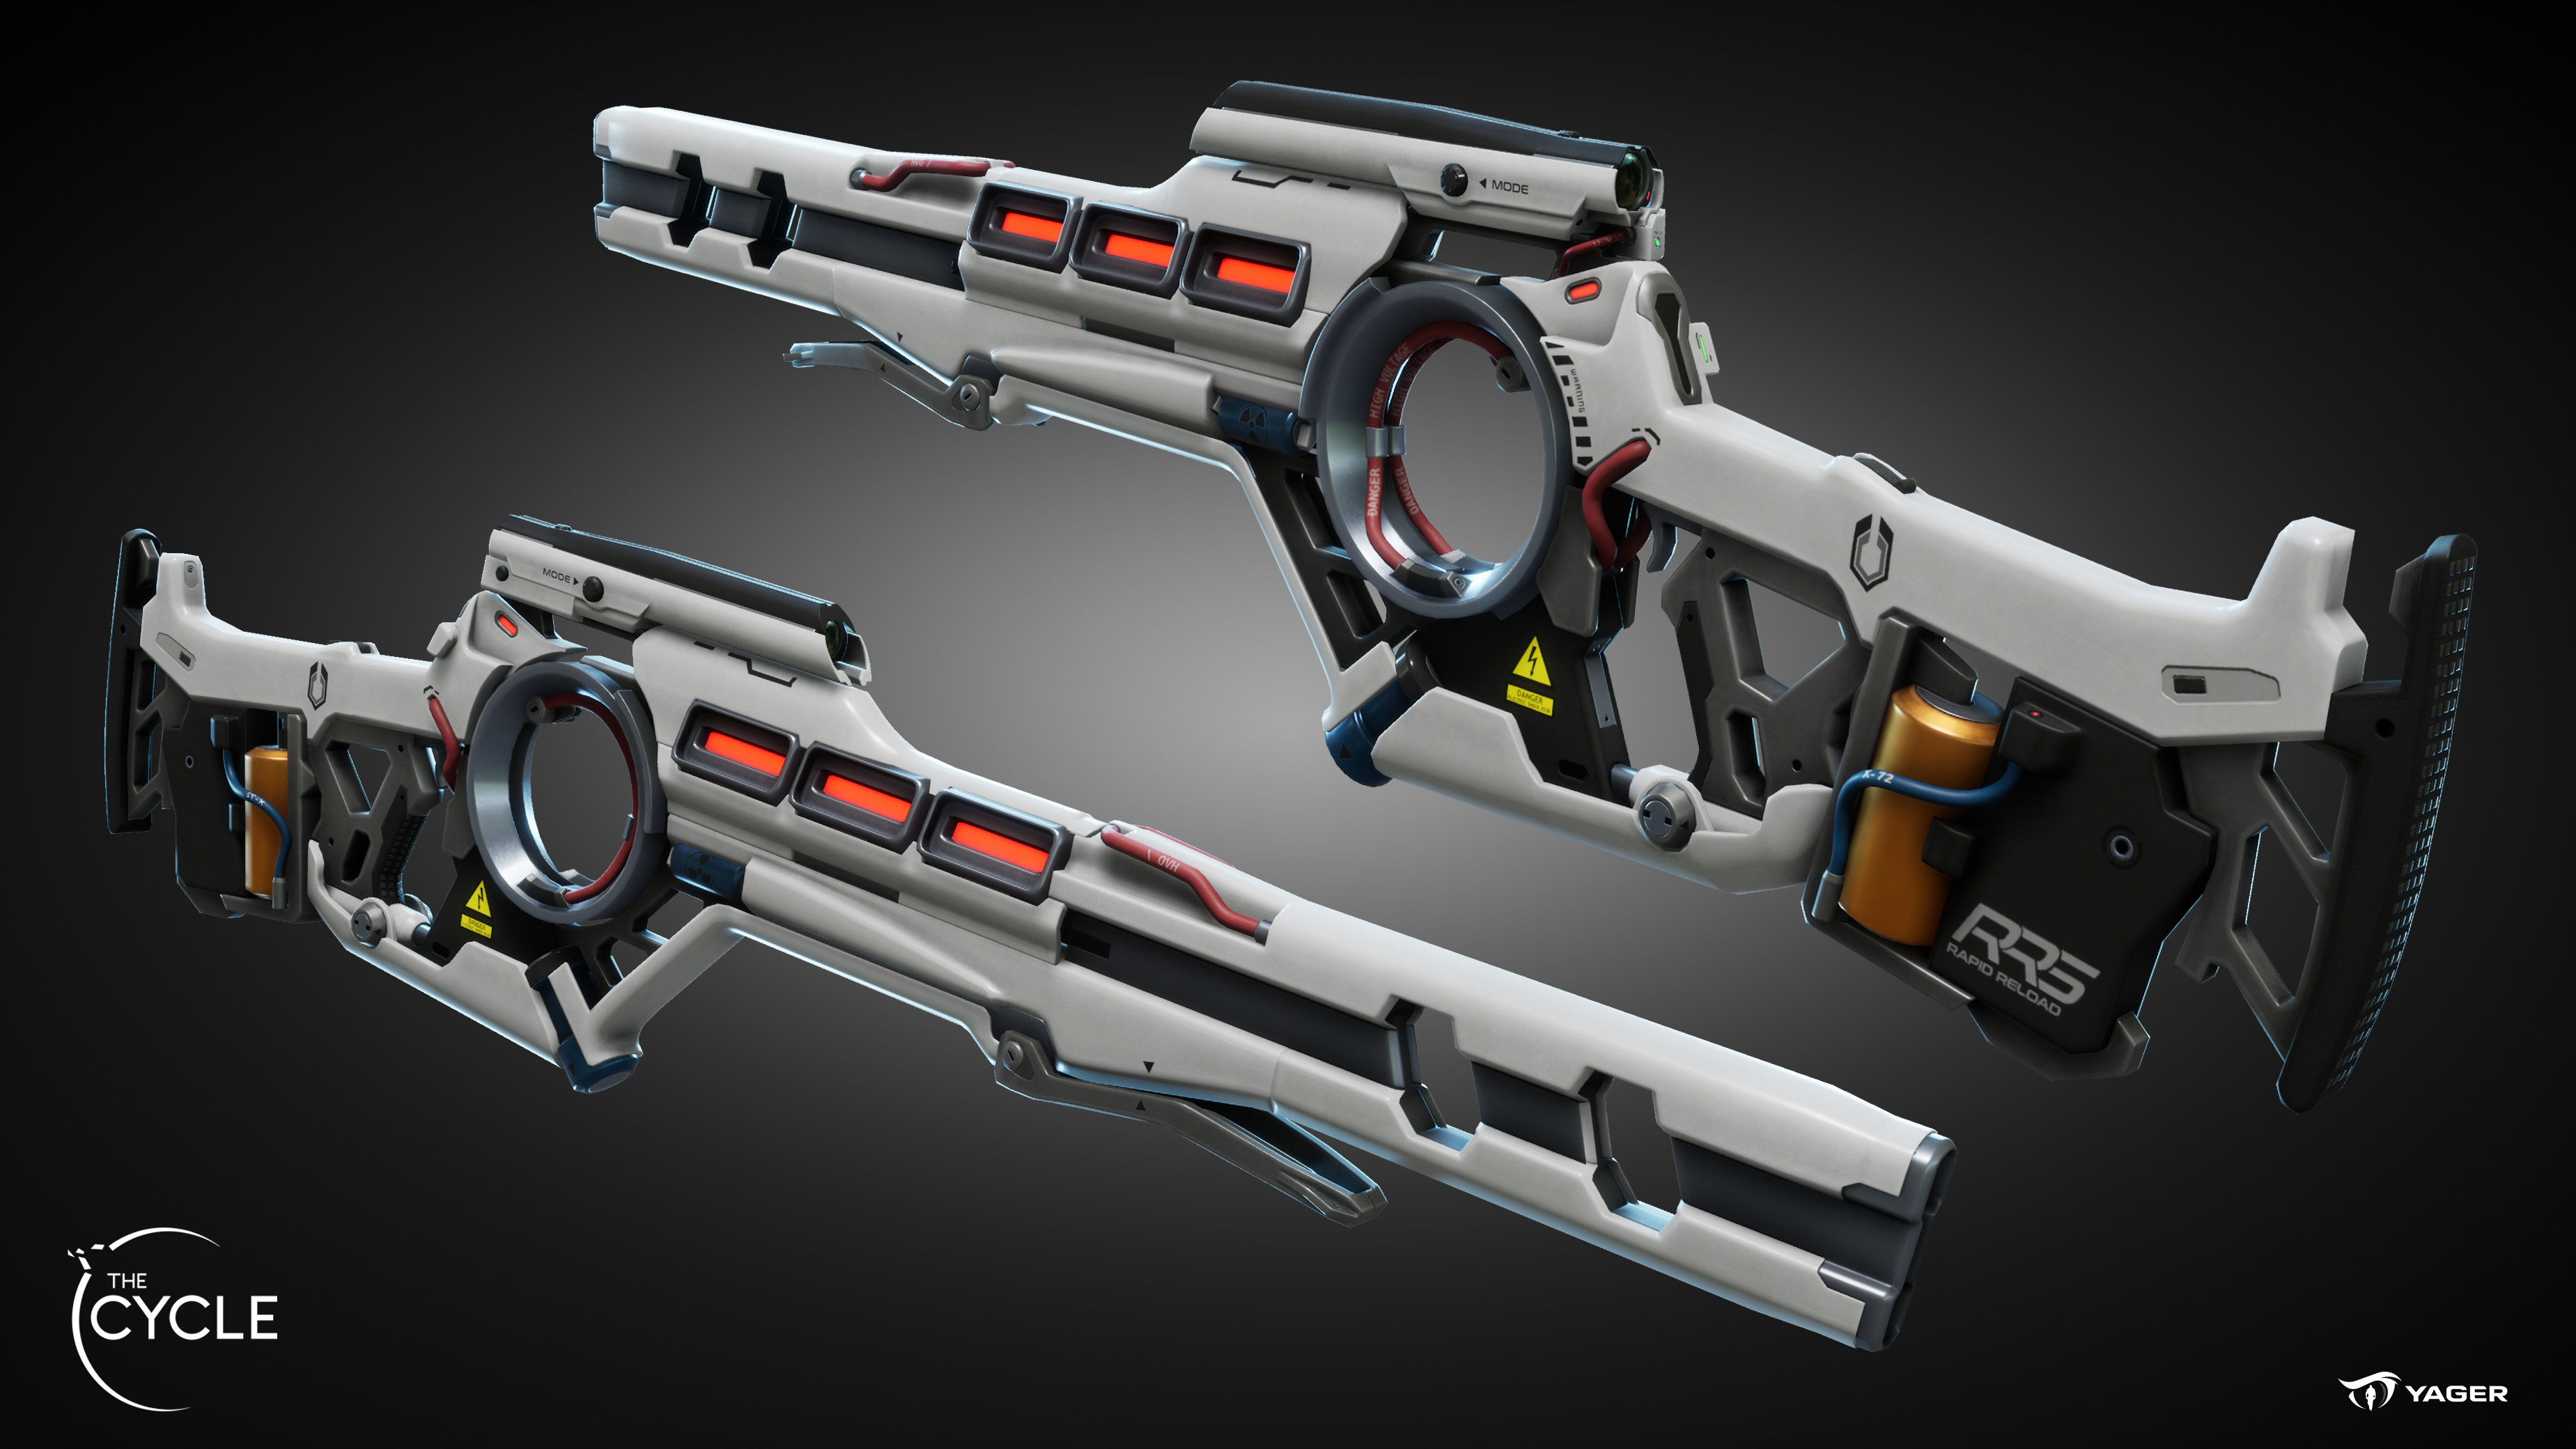 Basilisk (energy sniper rifle)